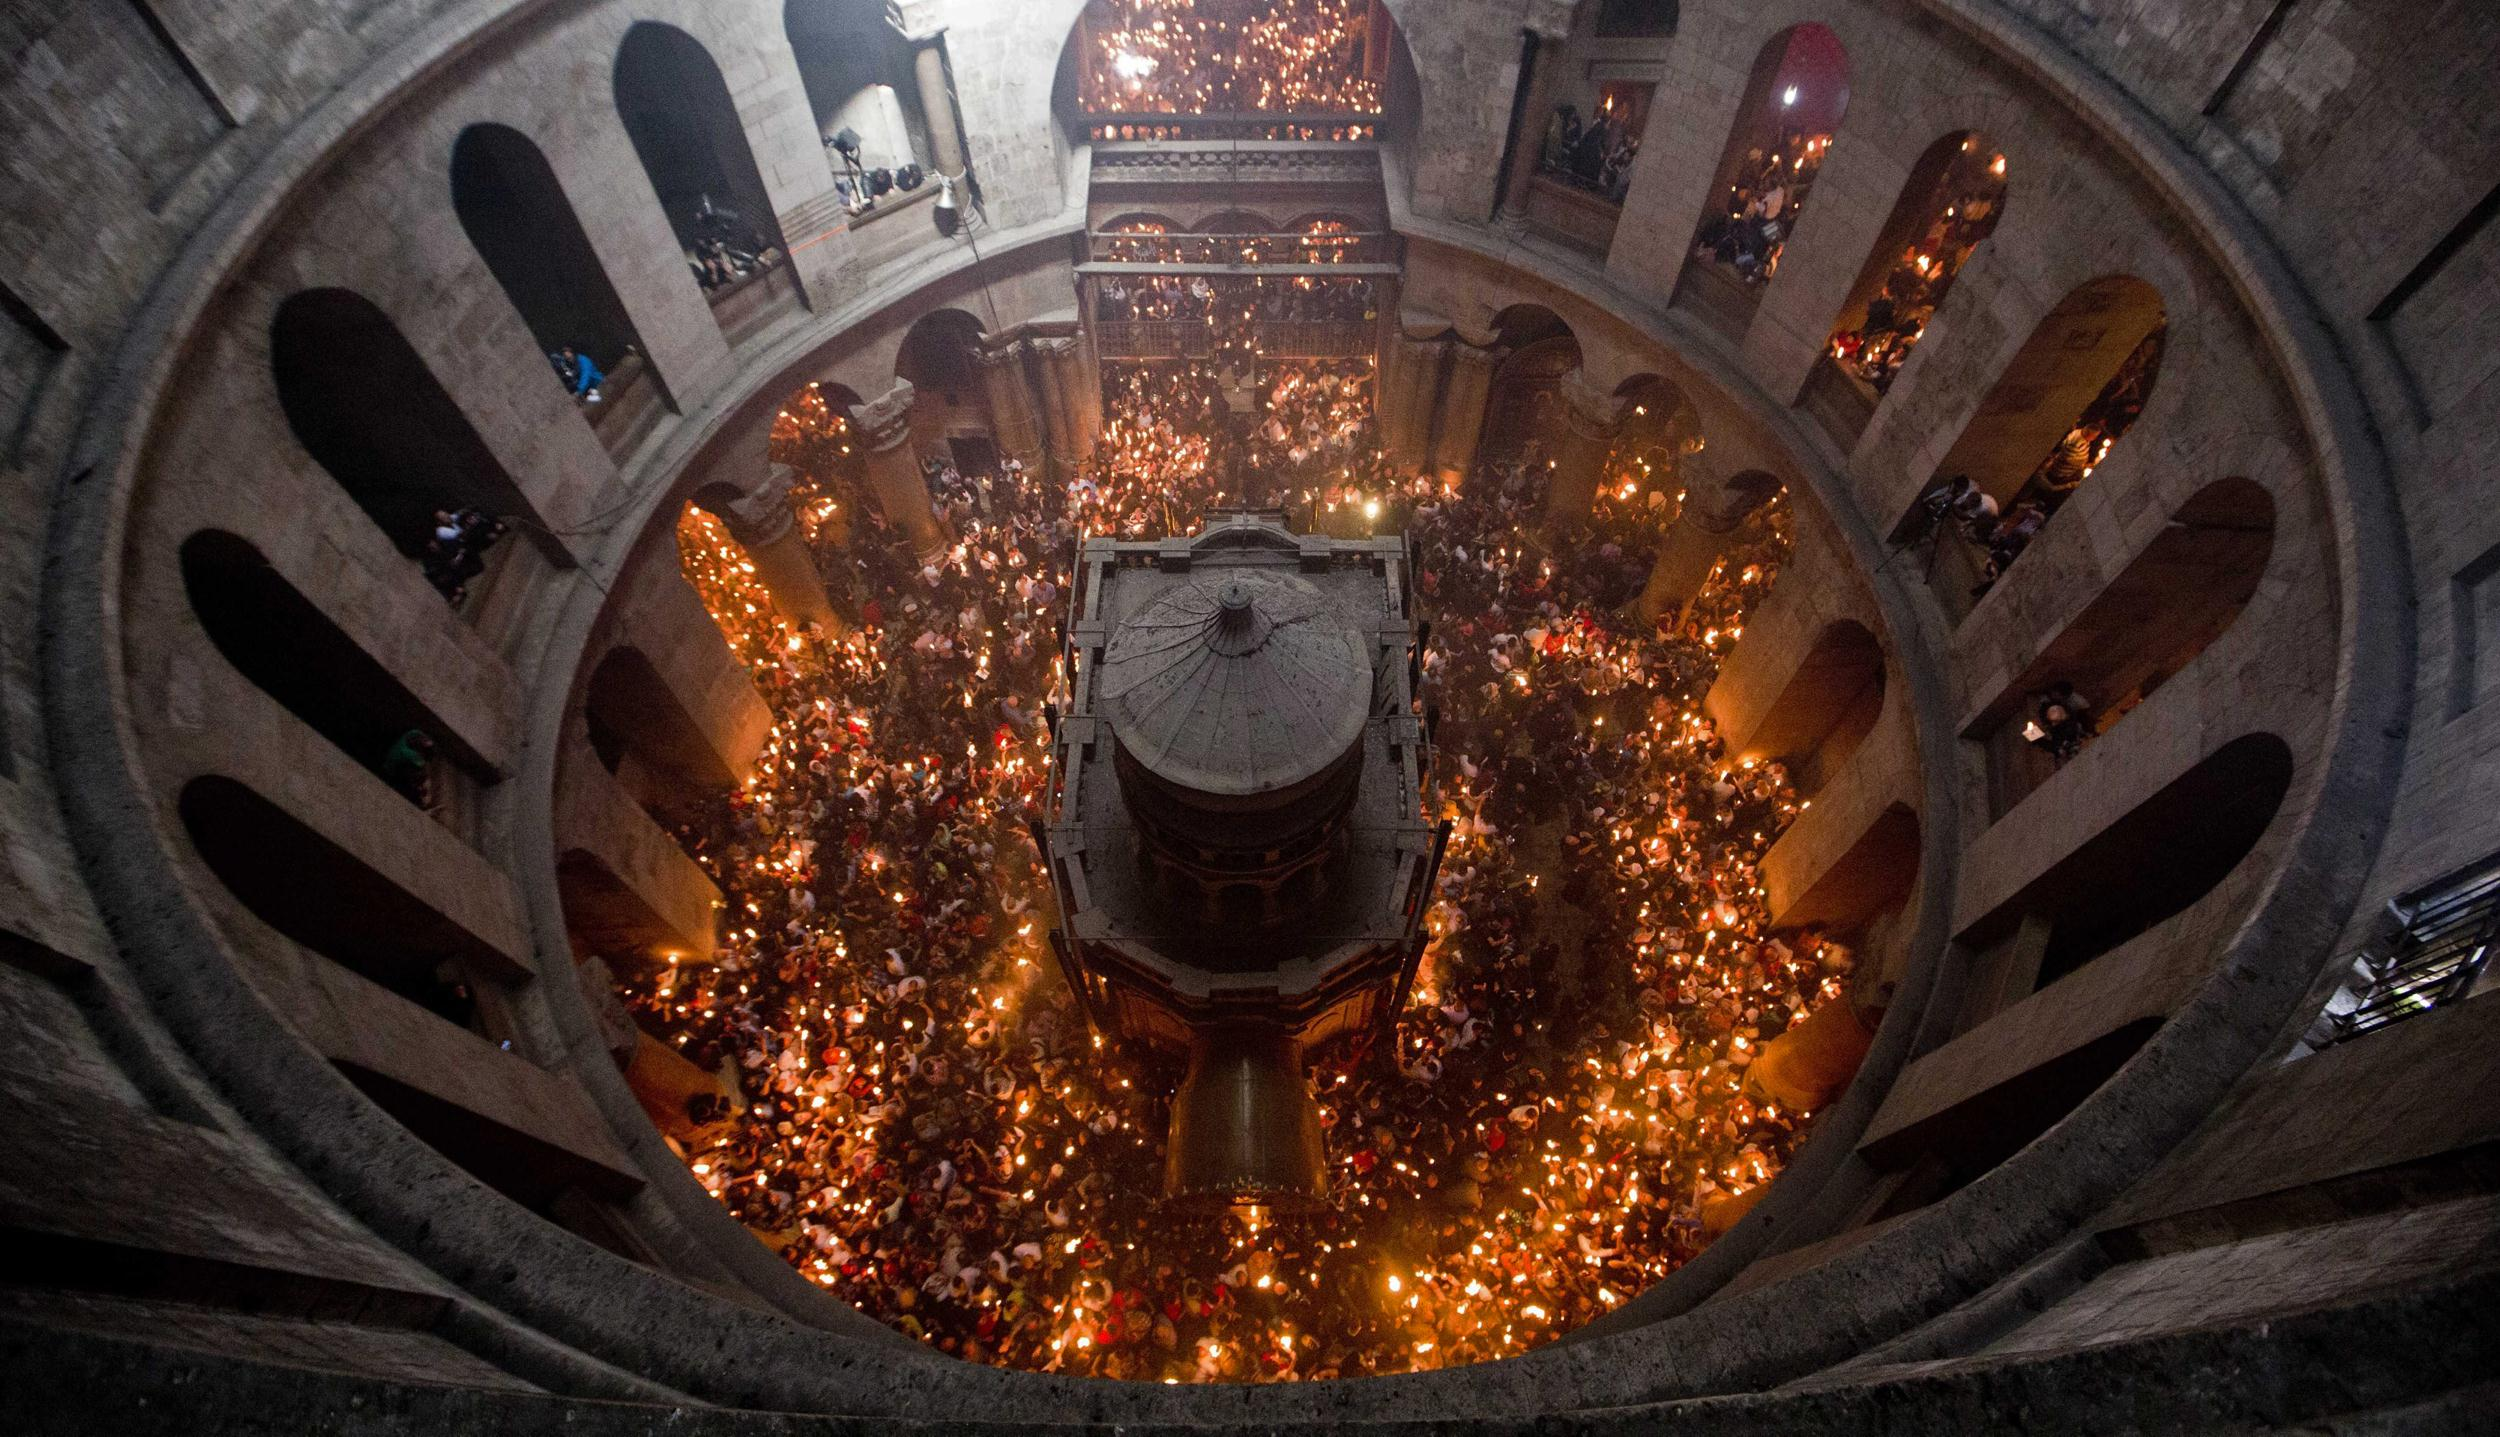 Image: Miracle of the Holy Fire in the Church of the Holy Sepulchre in Jerusalem the day before Easter